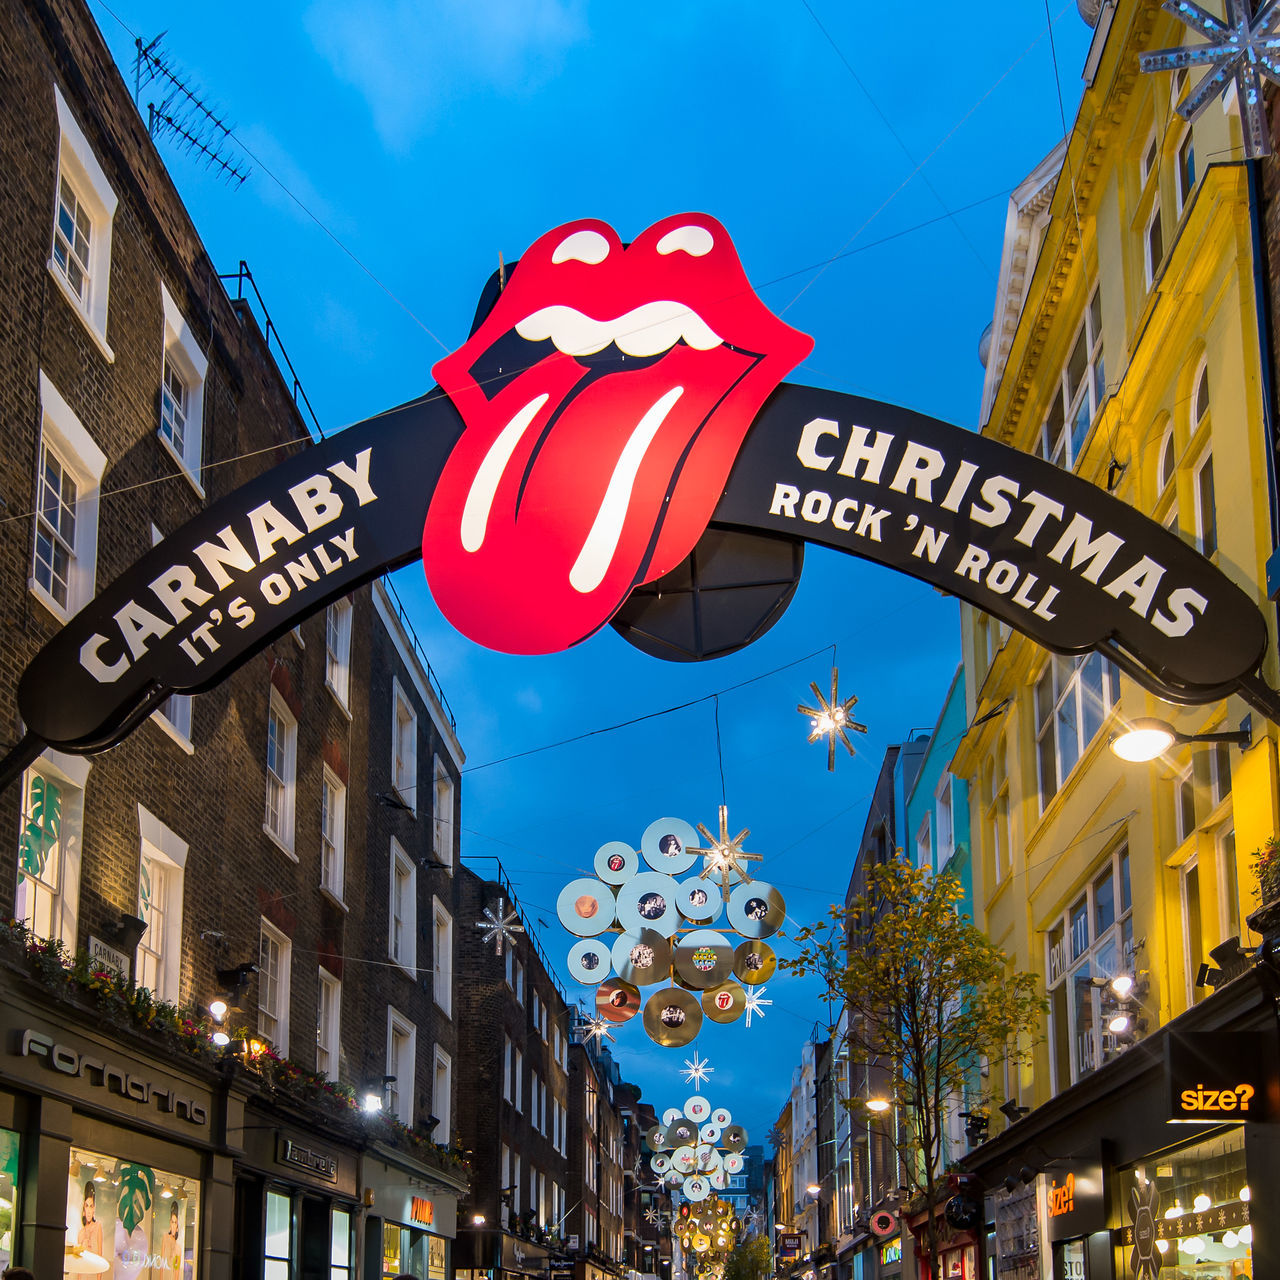 Architecture Blue Blue Sky Building Exterior Carnaby Christmas Carnaby Street Christmas Christmas Lights City Cultures EyeEm From My Point Of View Lights London Night No People Outdoors Red Rocknroll Rolling Stones Signs Sky Tongue Travel Destinations Vacations